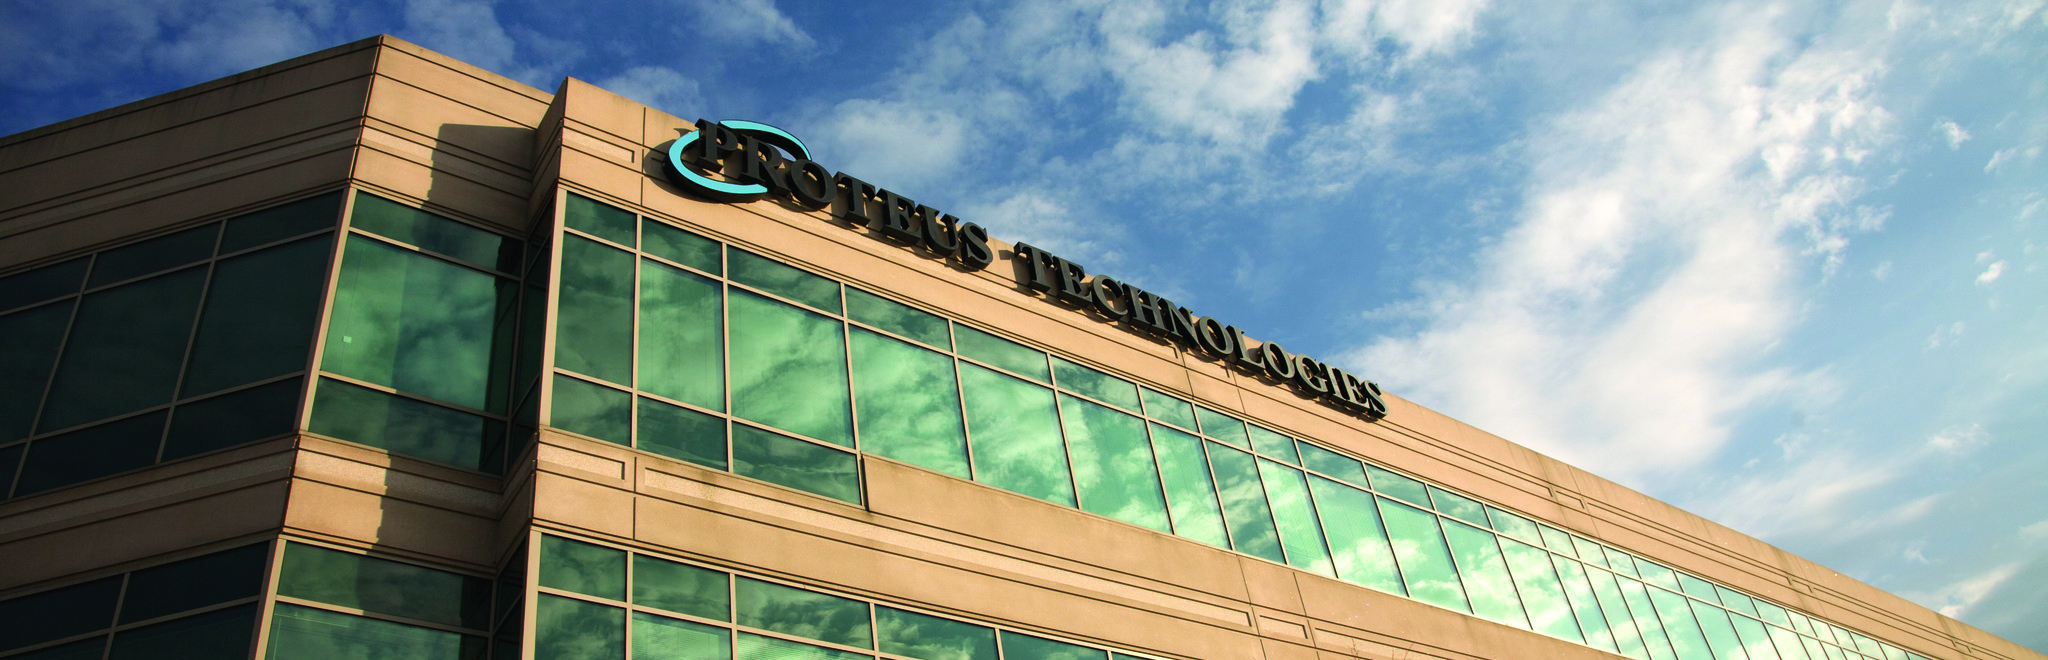 PROTEUS Technologies in Annapolis Junction acquired, merged in three-way deal